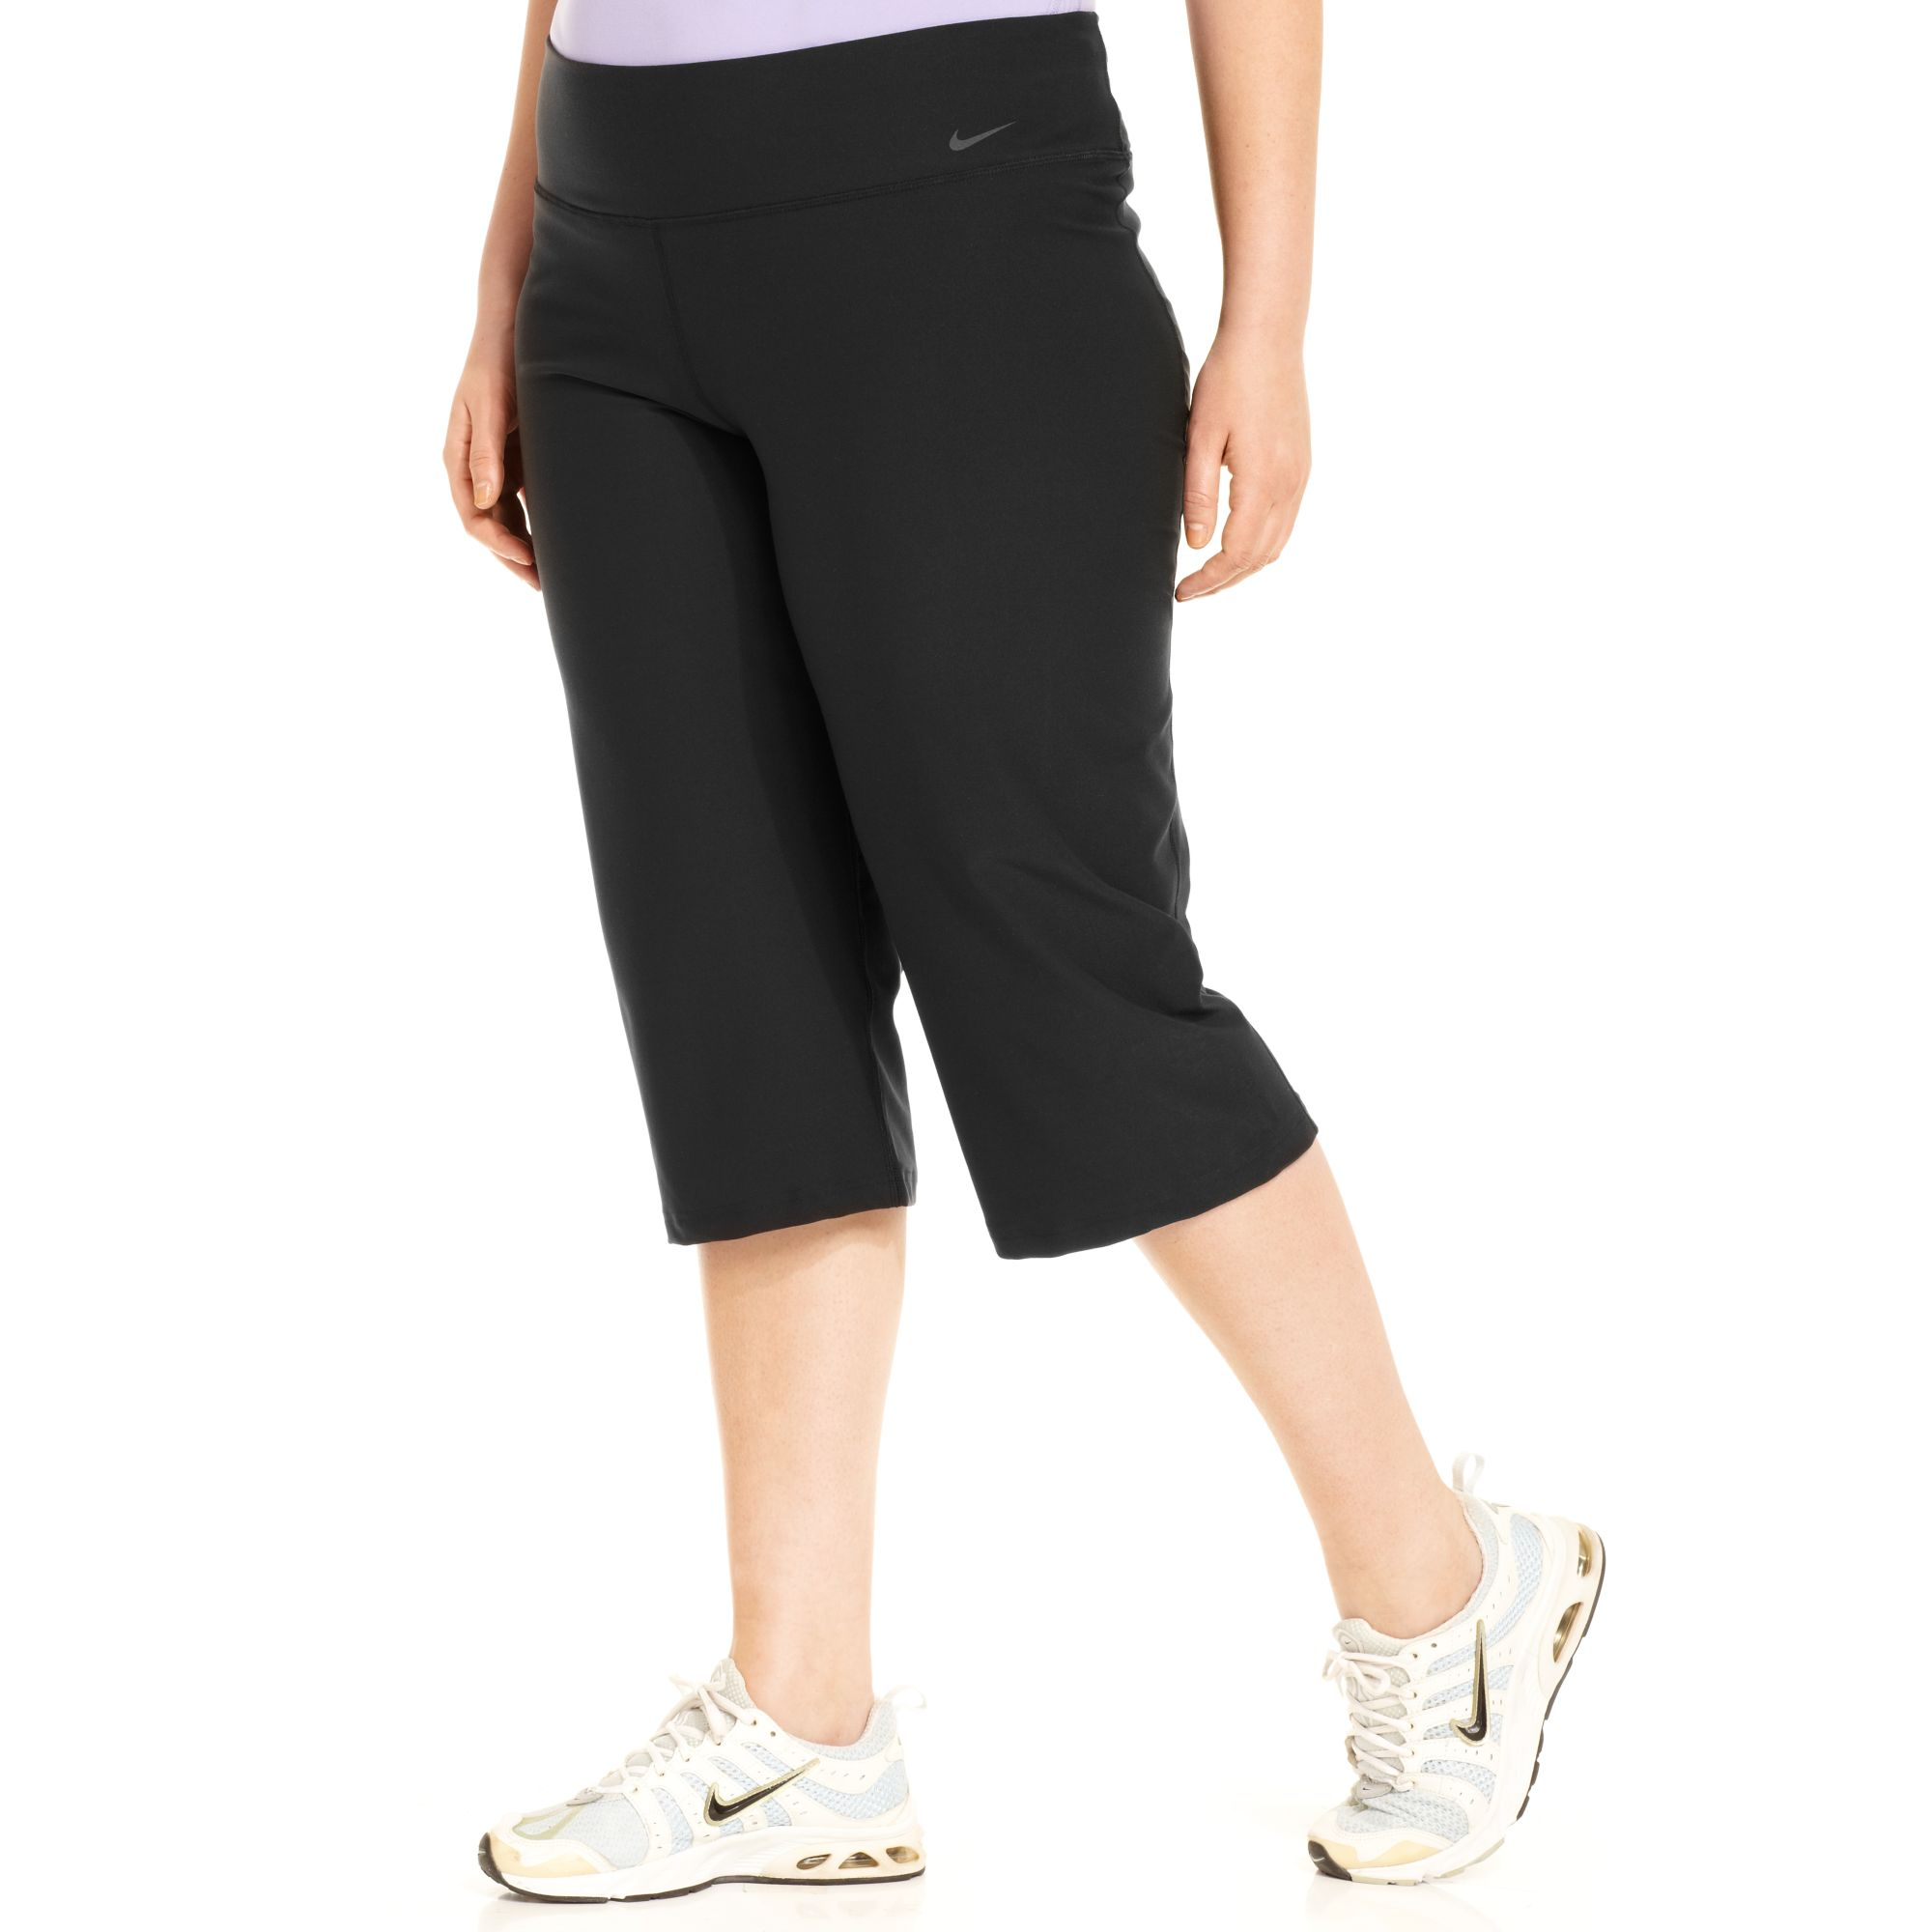 Buy New Womens Plus Size Capris & Cropped Pants at Macy's. Shop the Latest Plus Size Capris & Cropped Pants Online at 0549sahibi.tk FREE SHIPPING AVAILABLE!